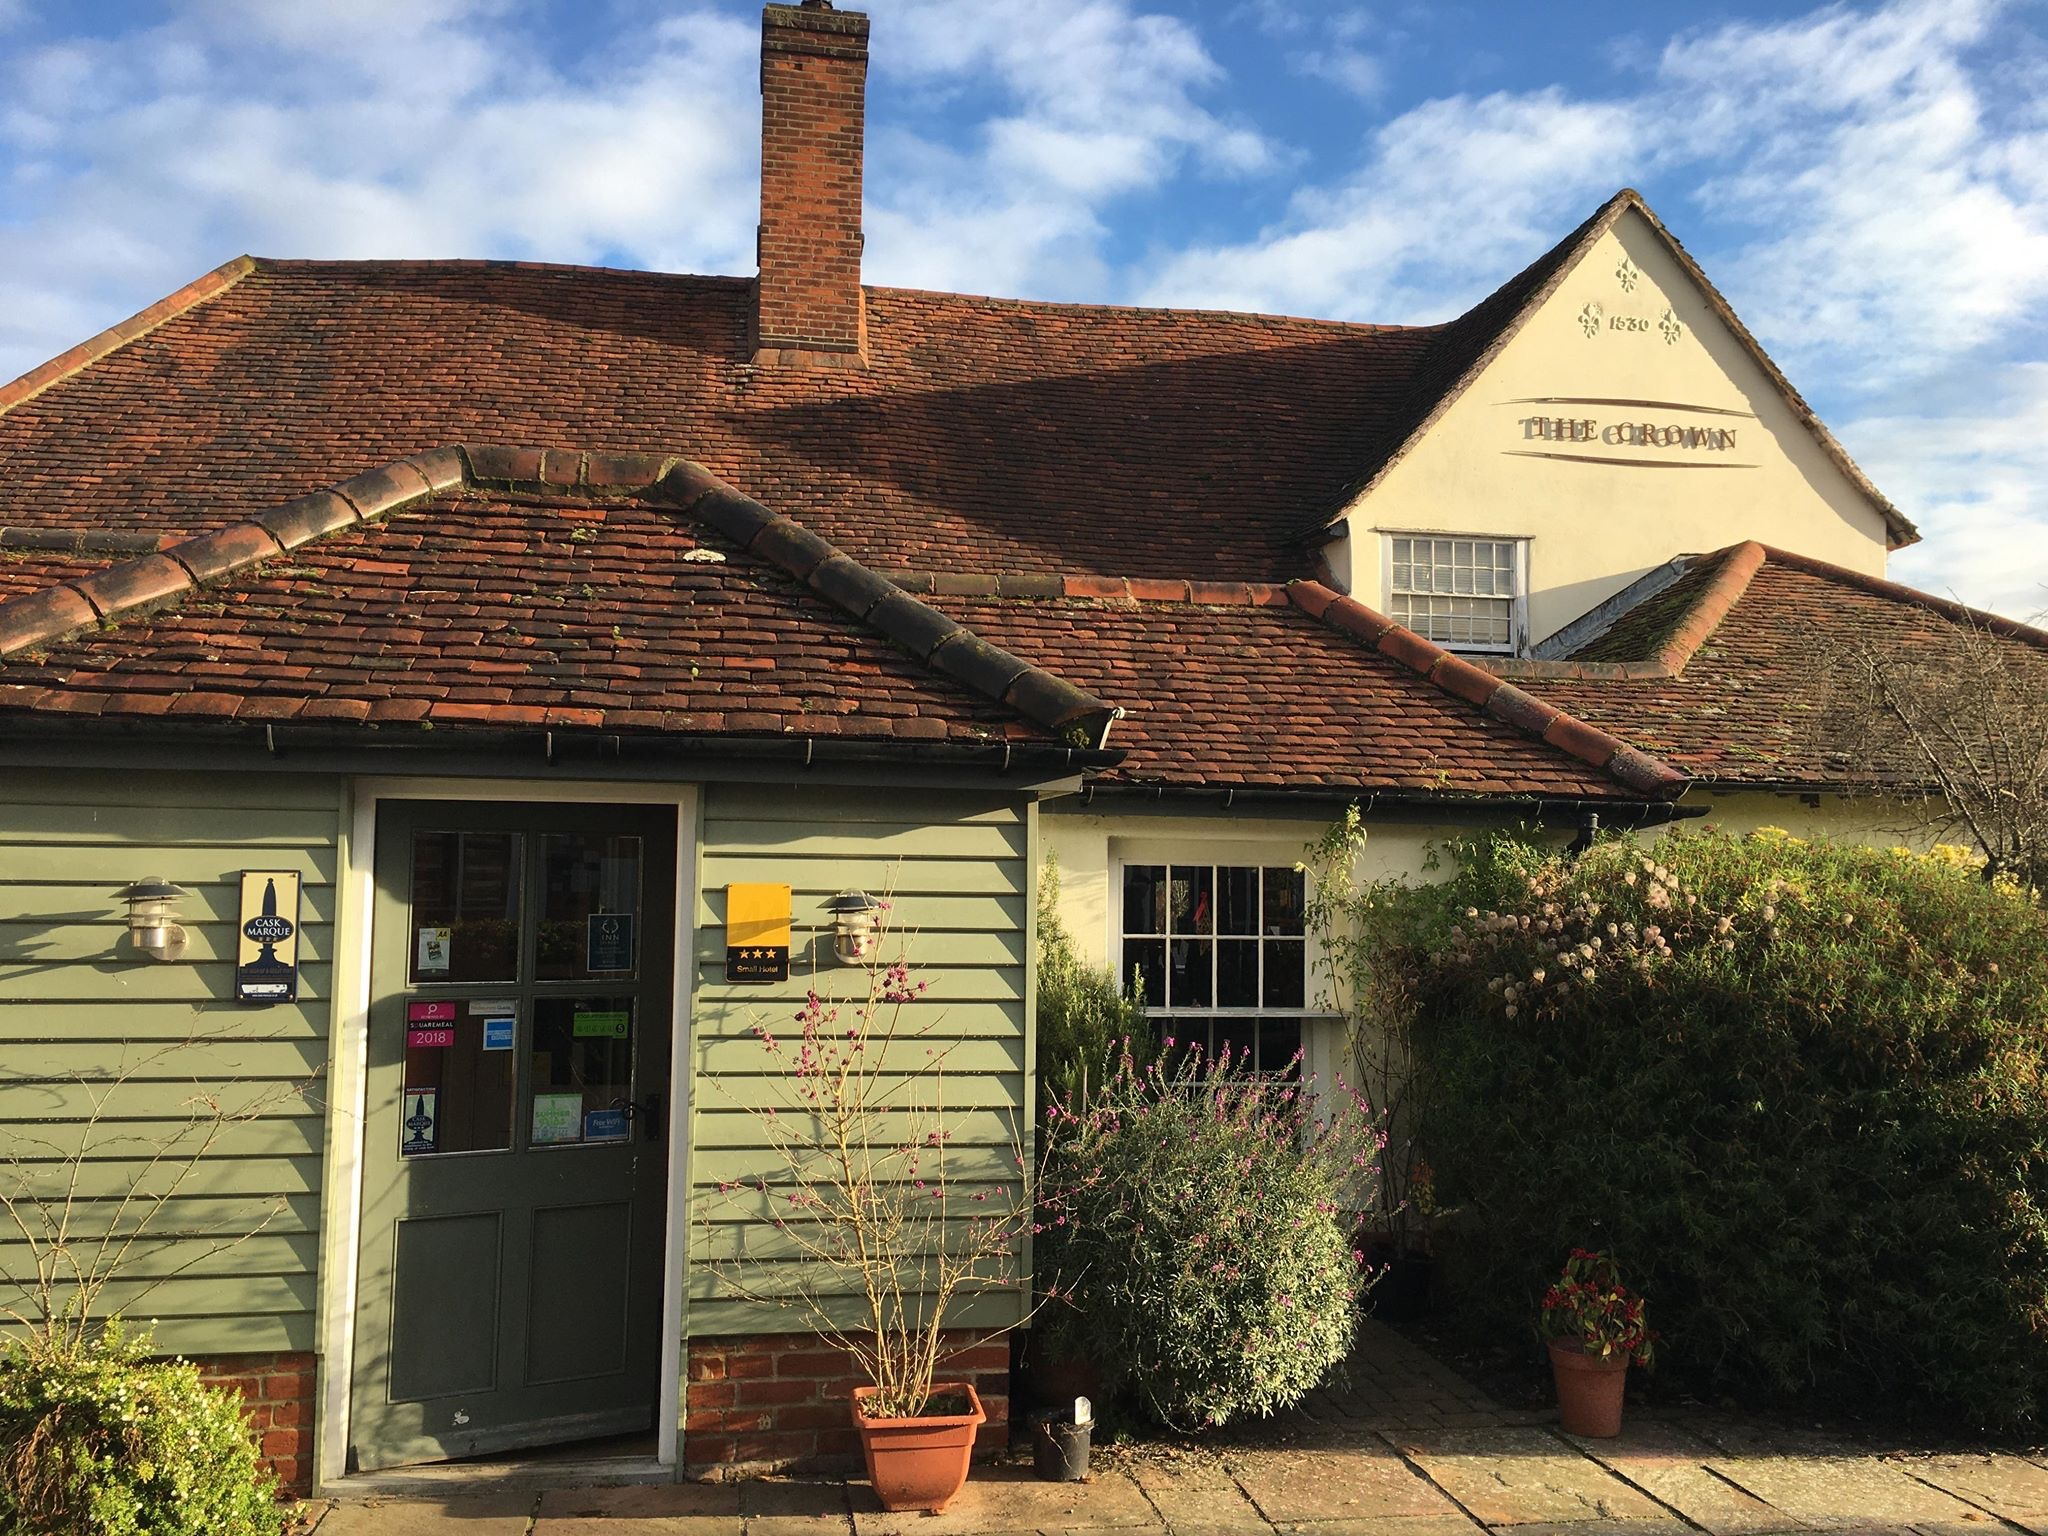 SUFFOLK PUB GETS A BOOST WITH ALPHA PROTEC PLUS BOILER